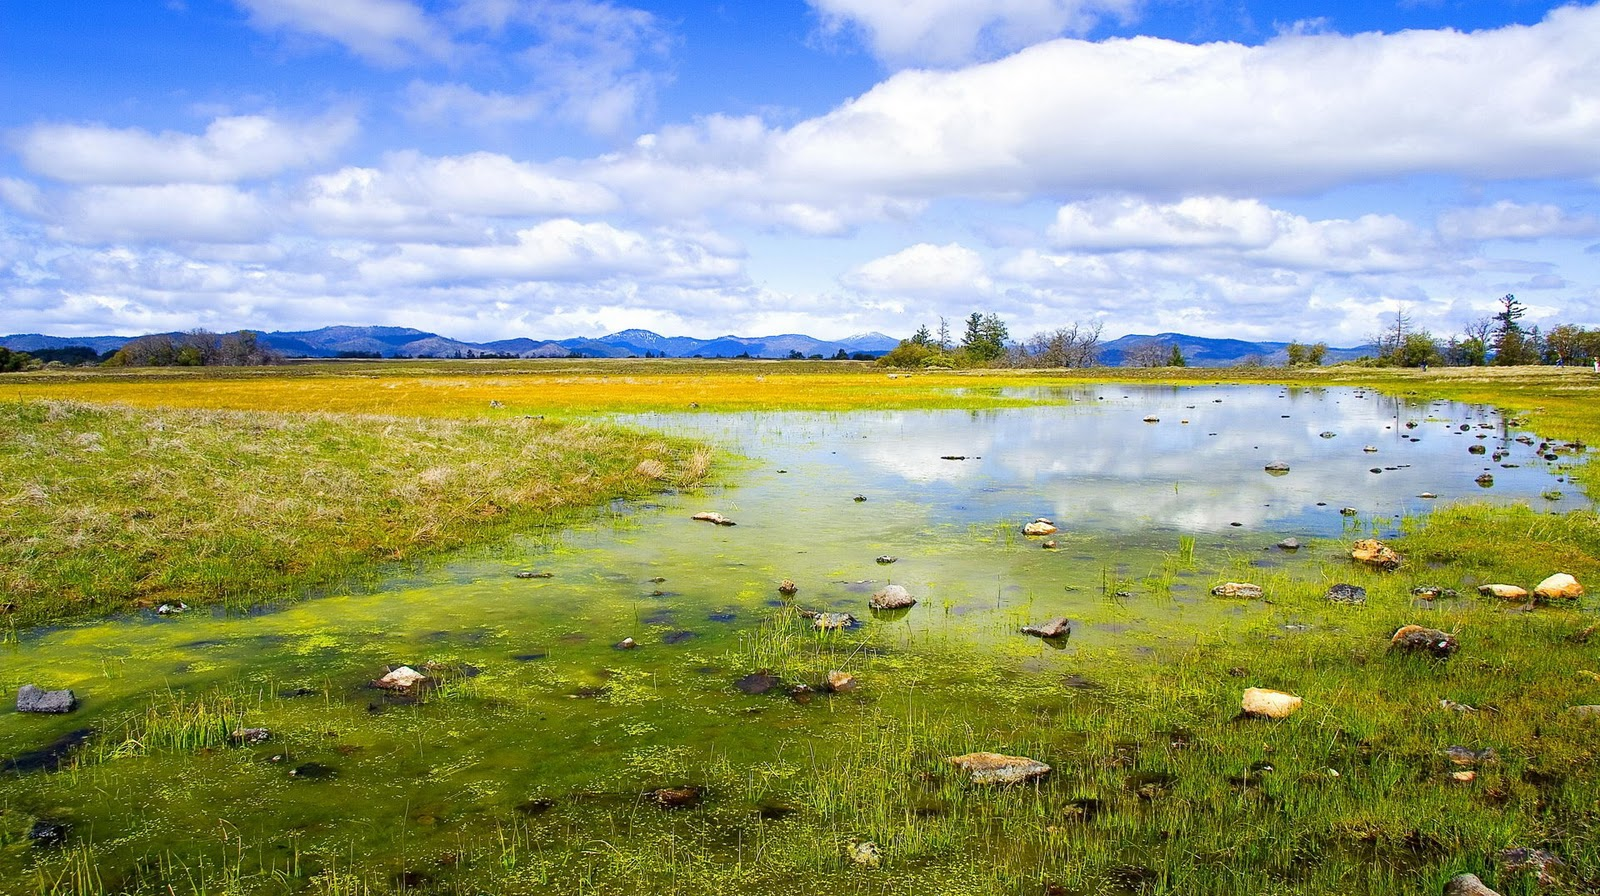 Wallpapers win 7 page 7 - Nature wallpaper windows 7 ...